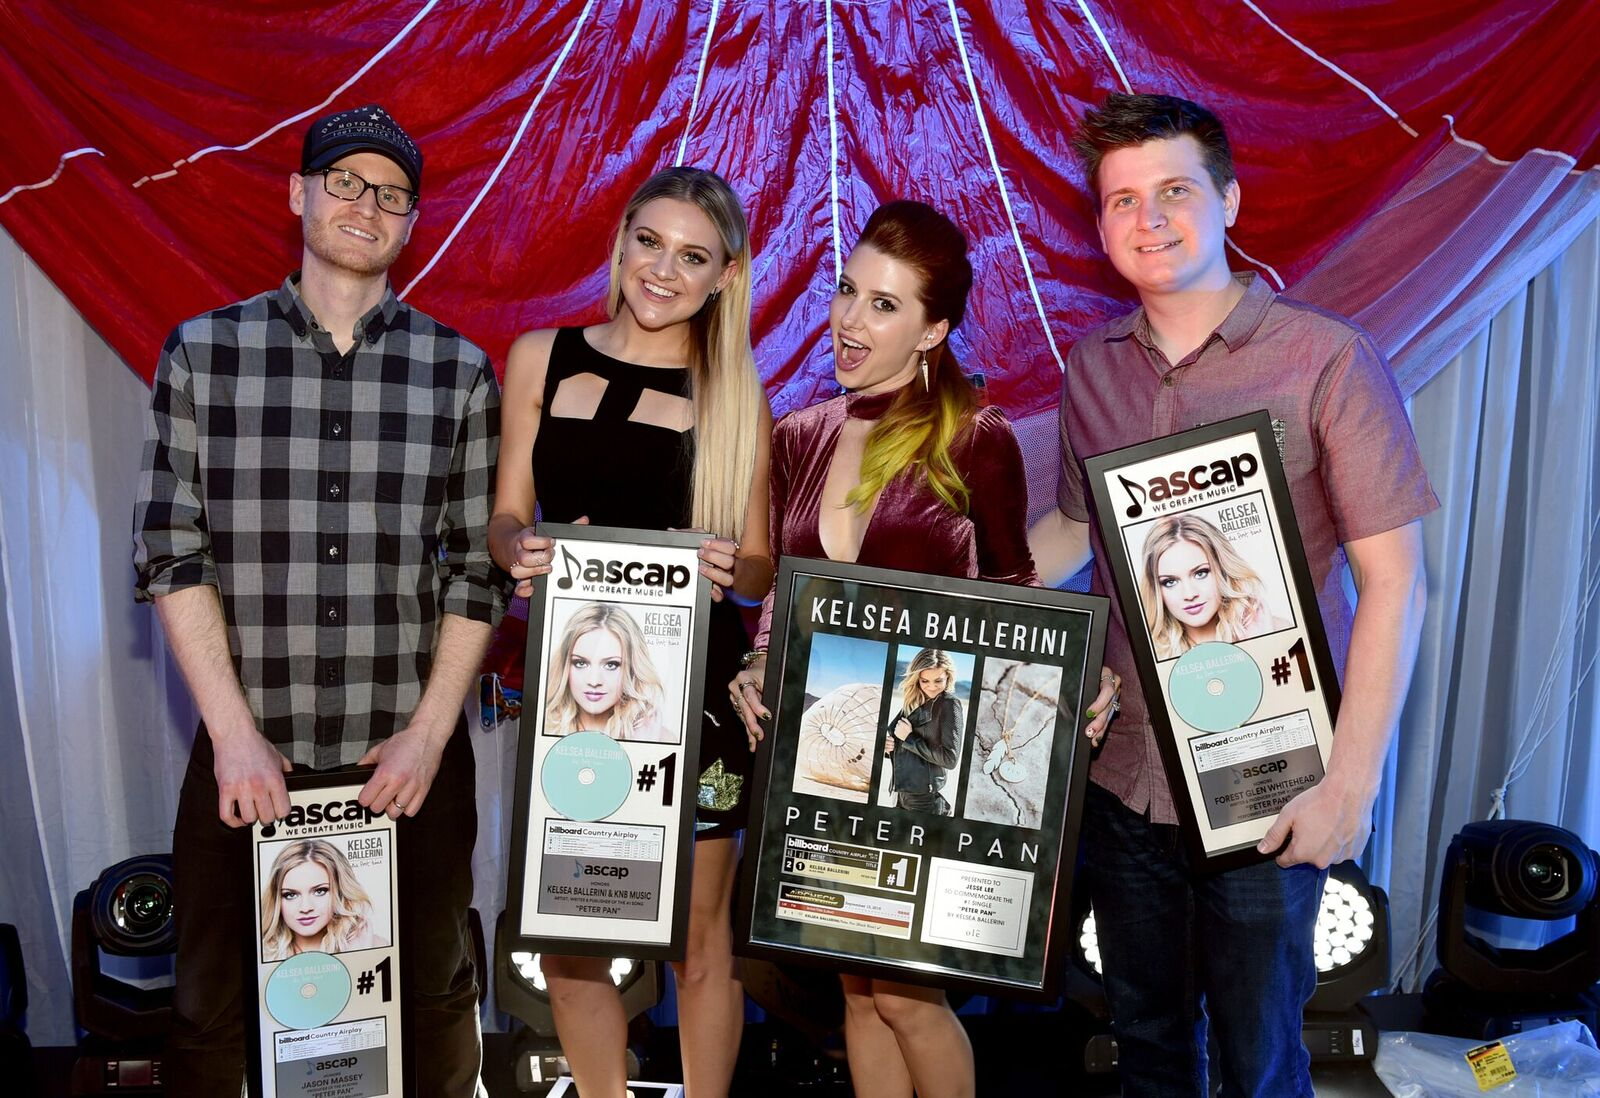 Jason Massey, Kelsea Ballerini, Jesse Lee, Forest Glen Whitehead